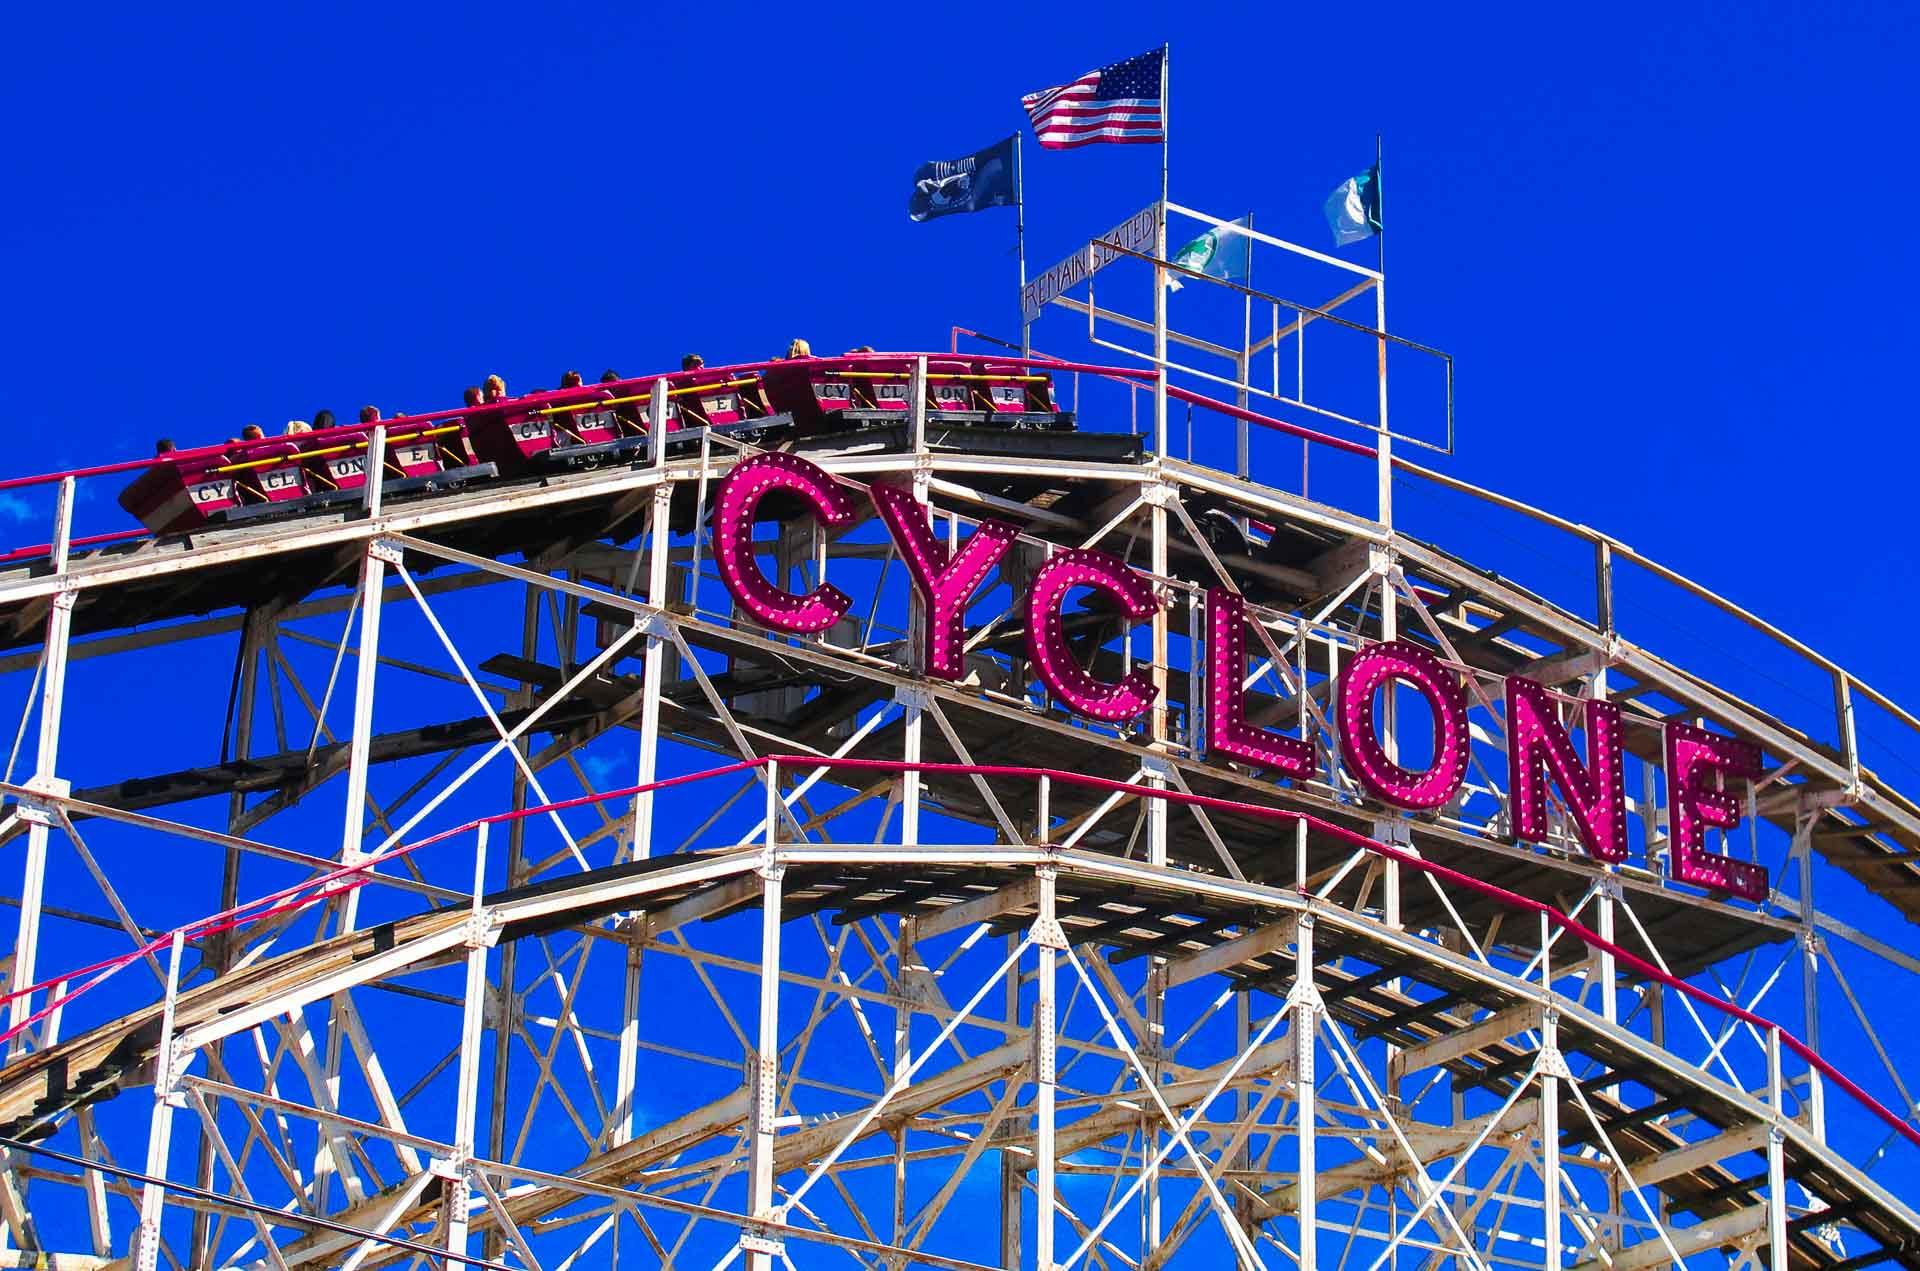 famous Cyclone roller coaster in New York City's Coney Island